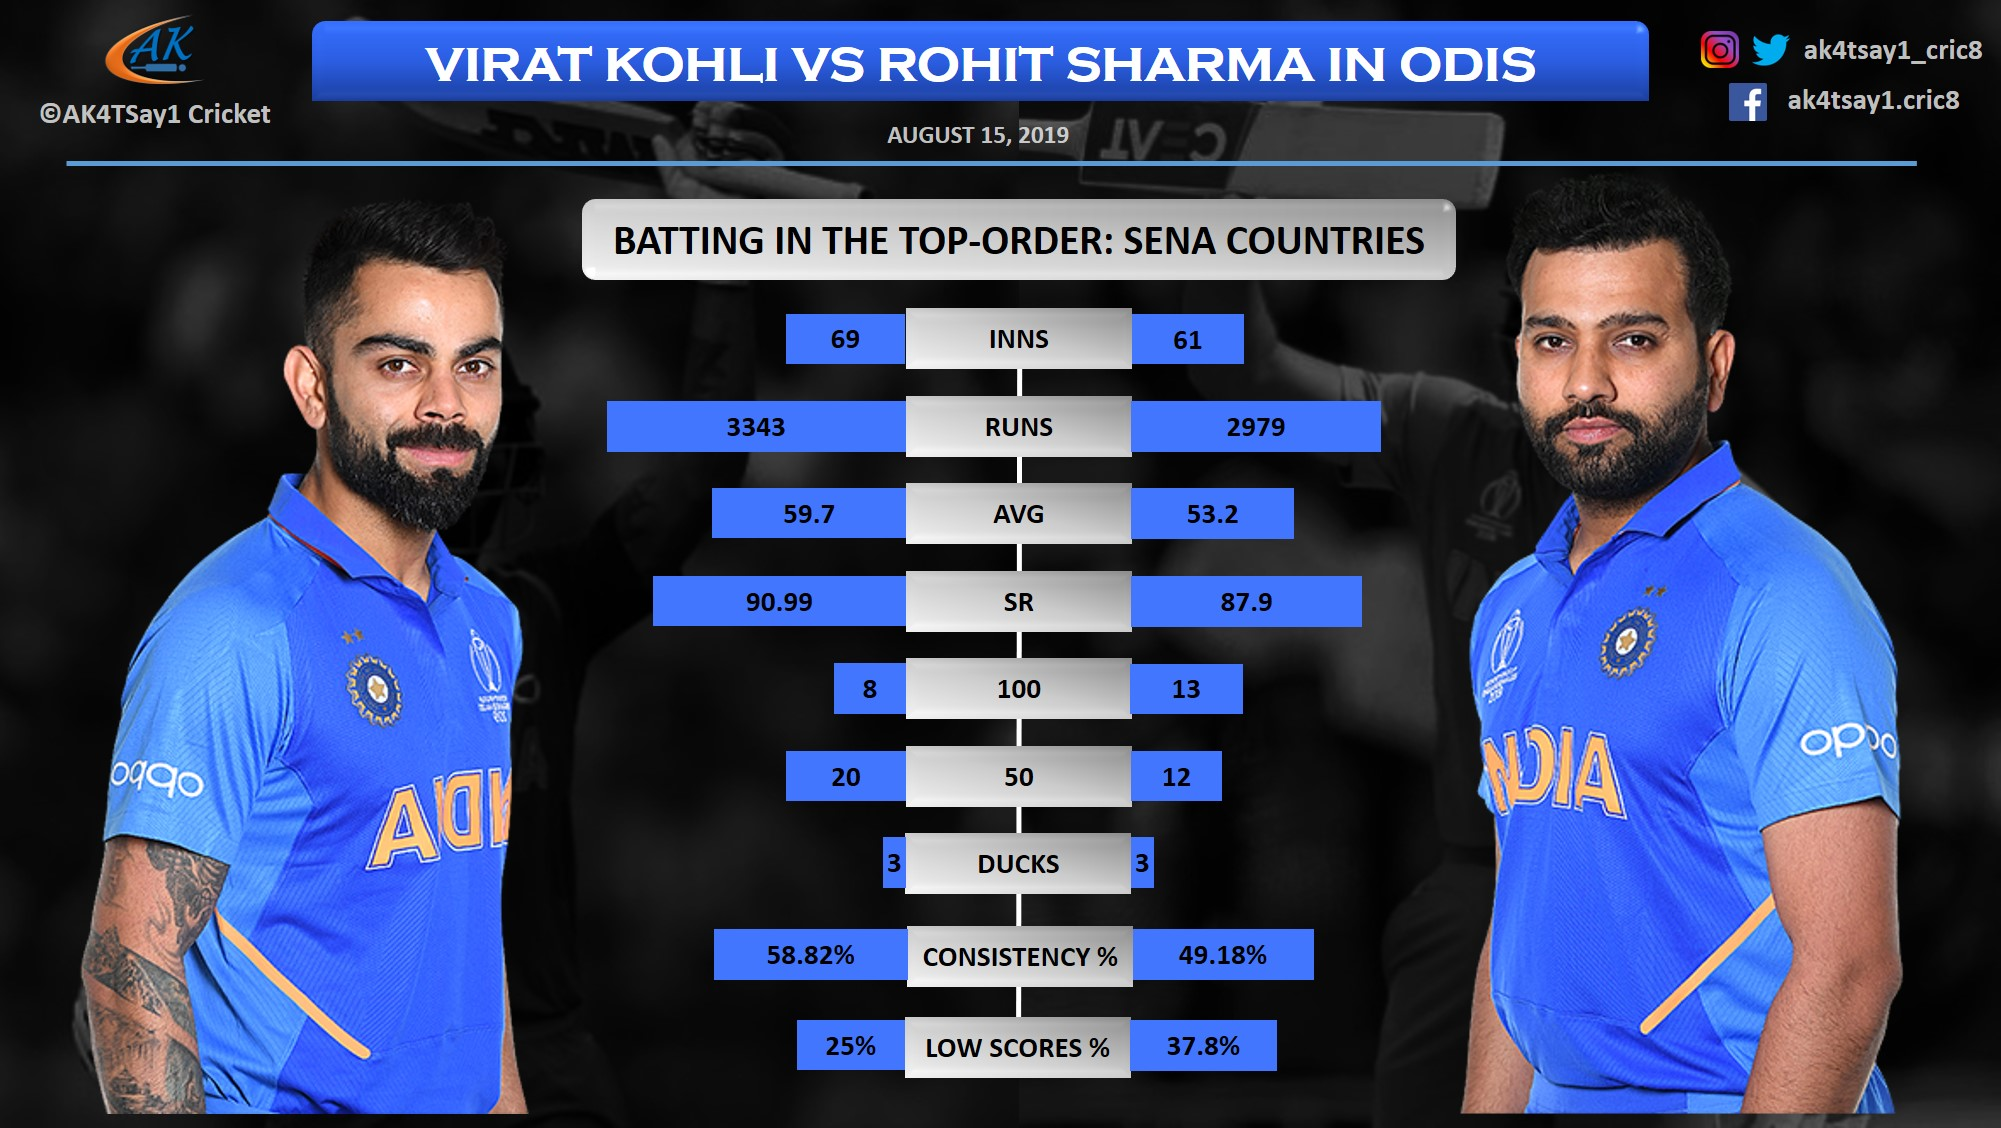 Virat Kohli vs Rohit Sharma in SENA Countries in ODIs